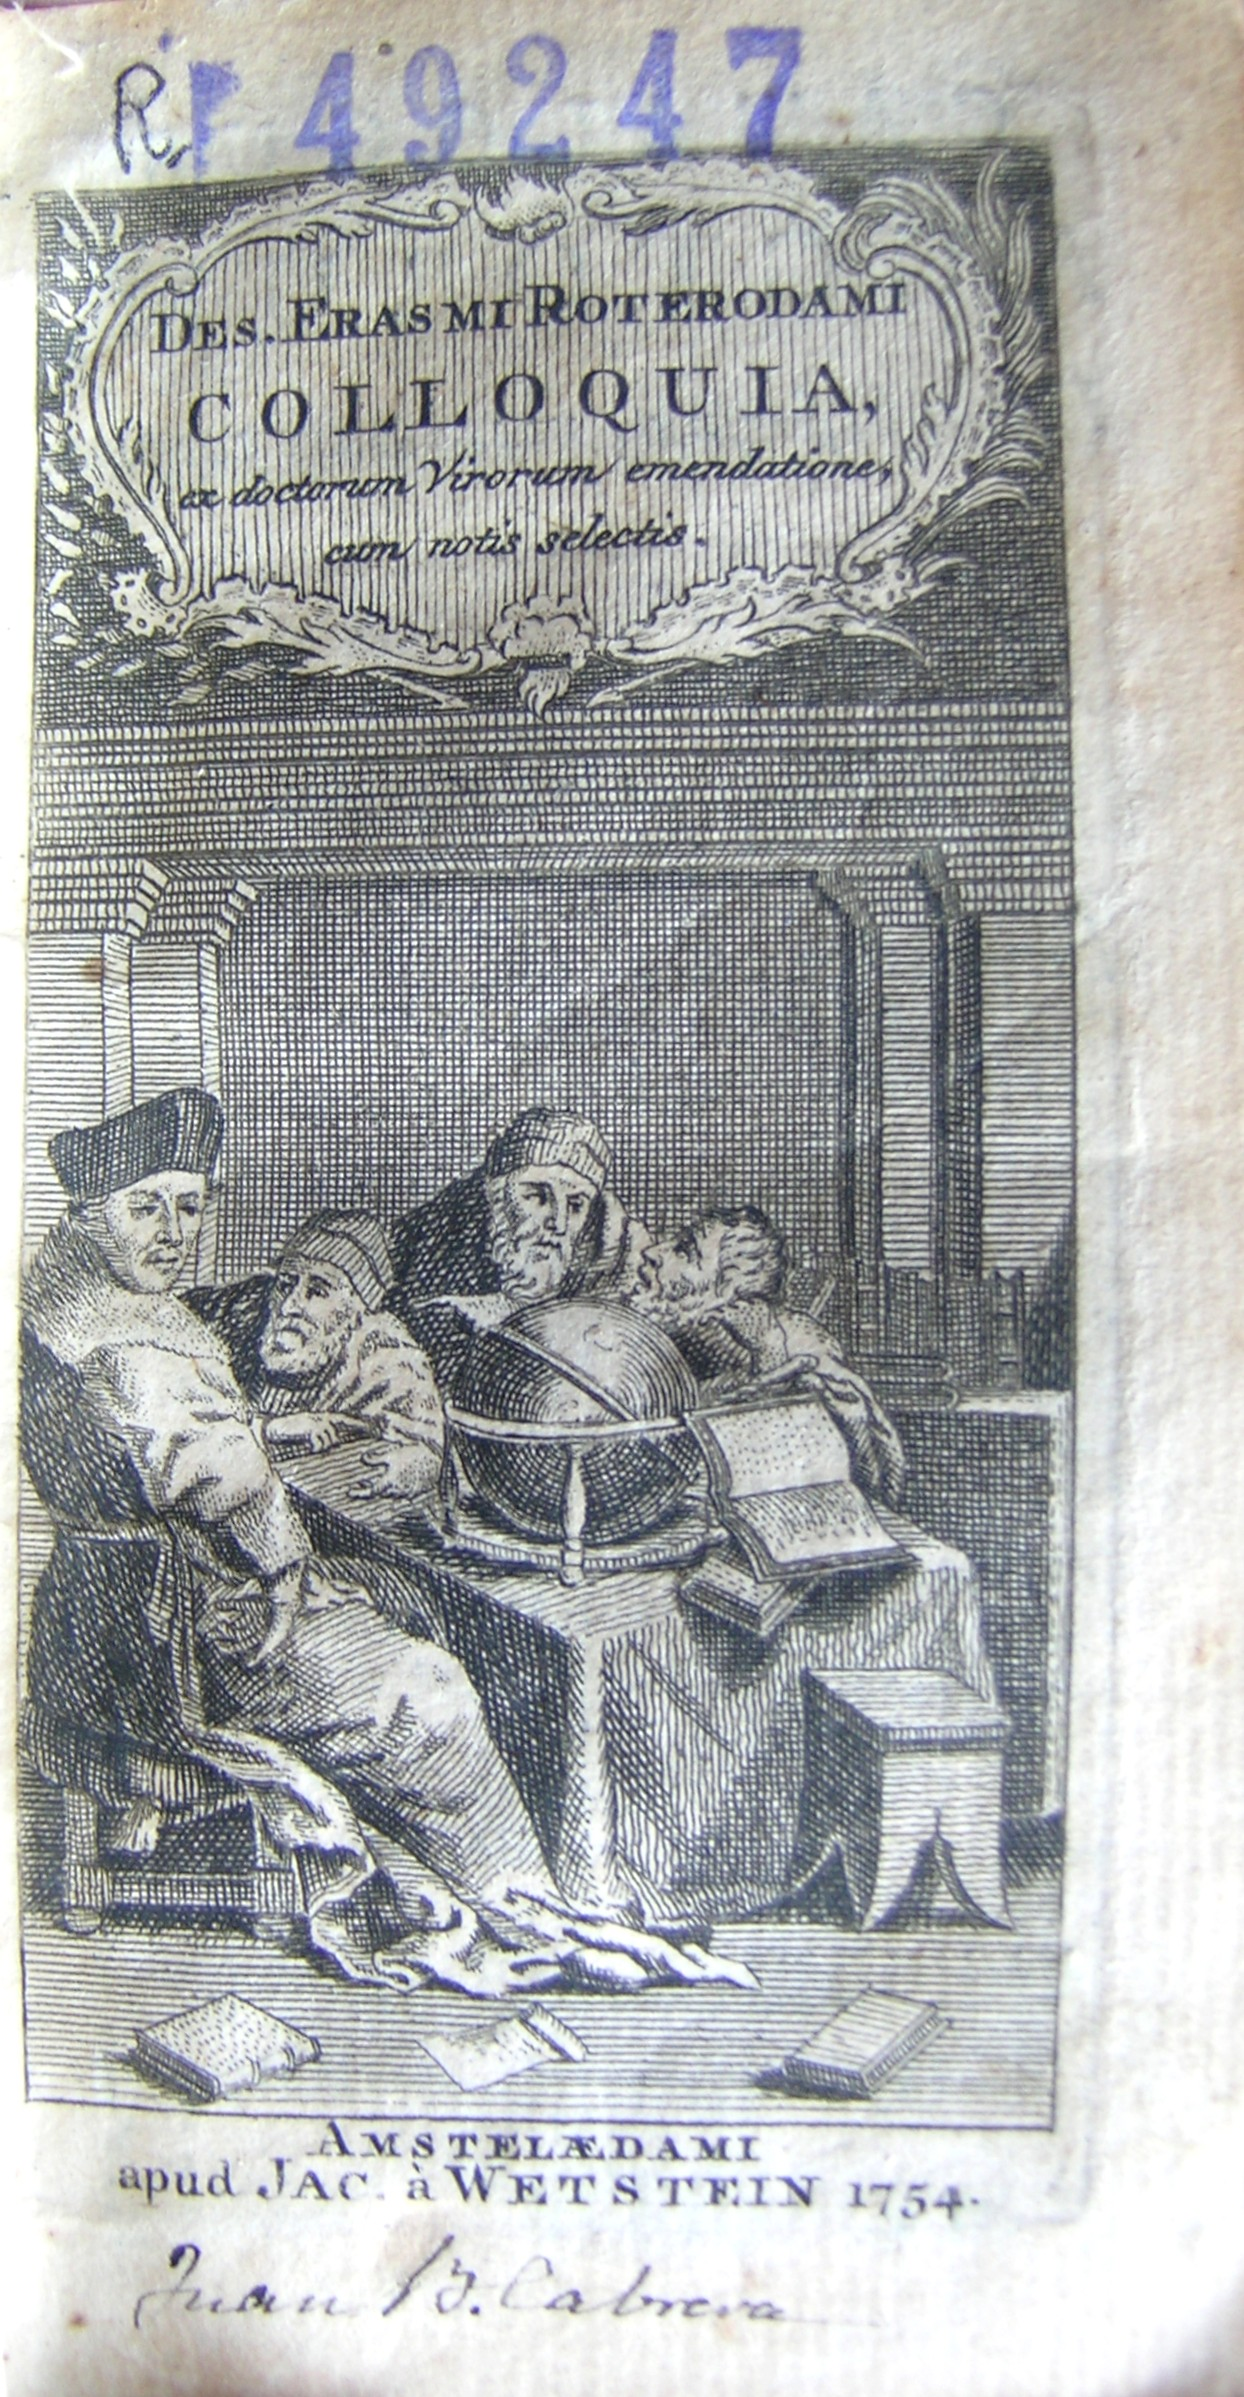 Colloquia, 1754